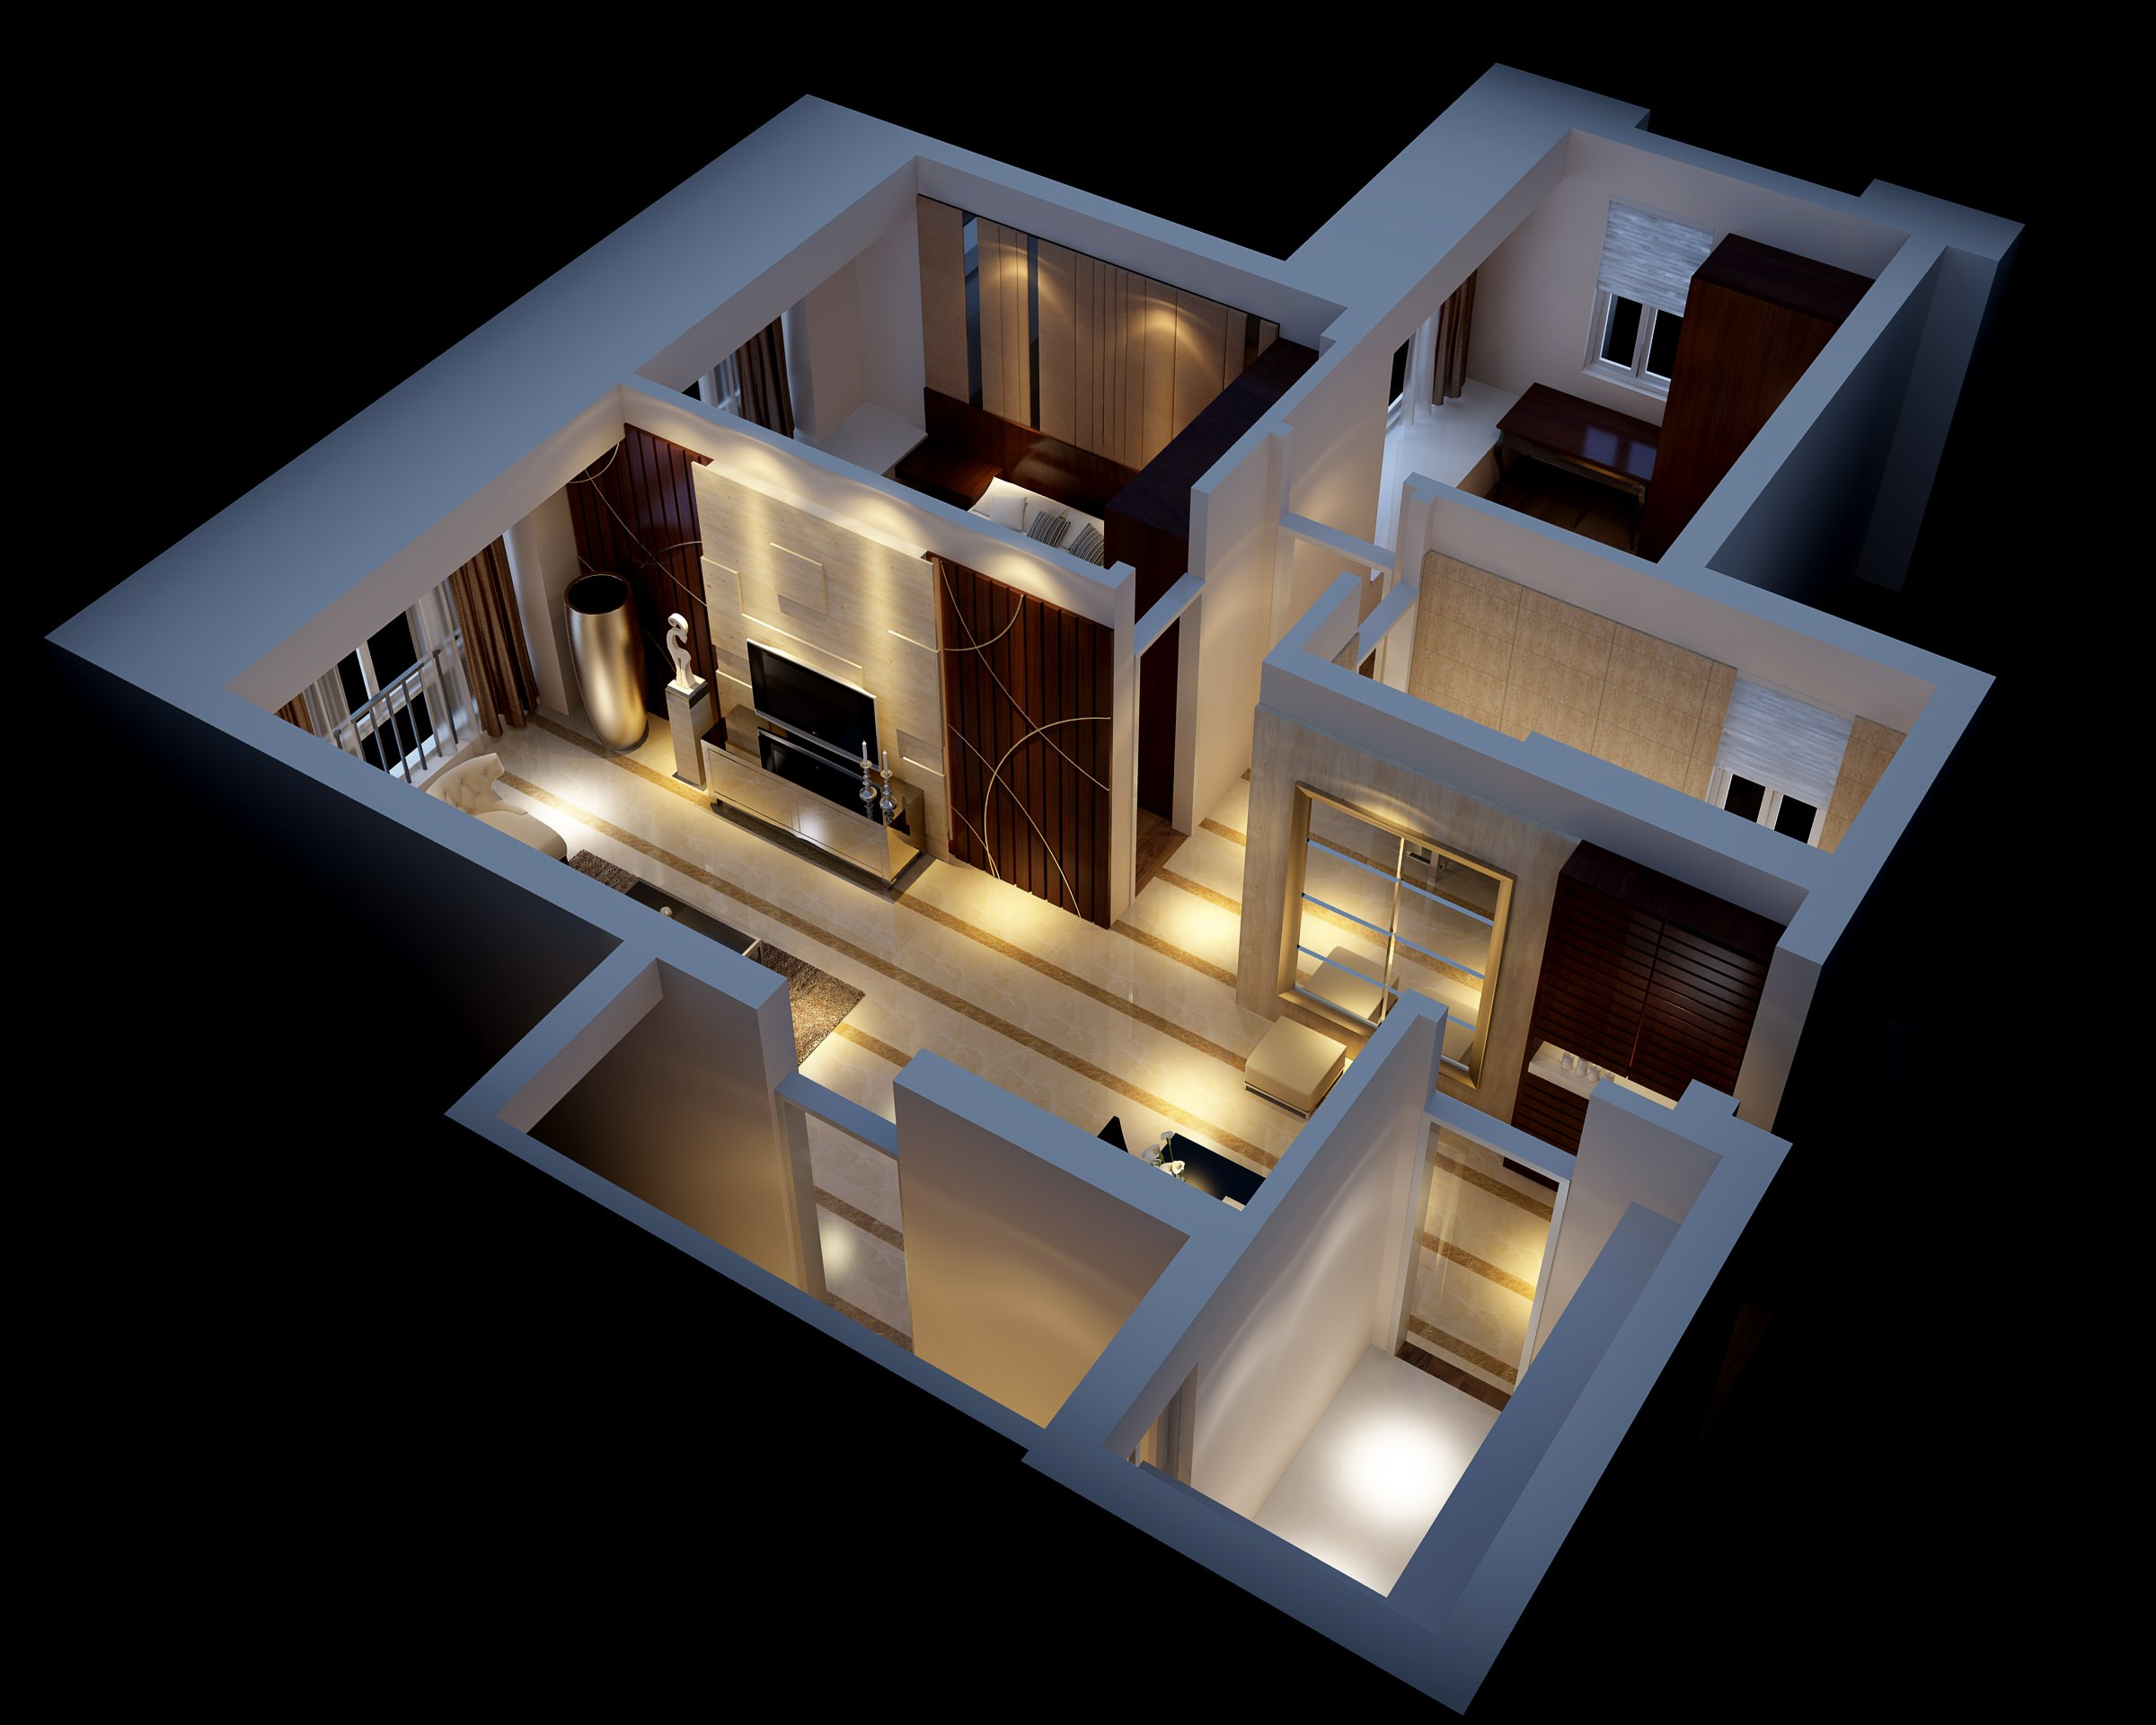 Modern house interior fully furnished 3d model max for Apartment design models